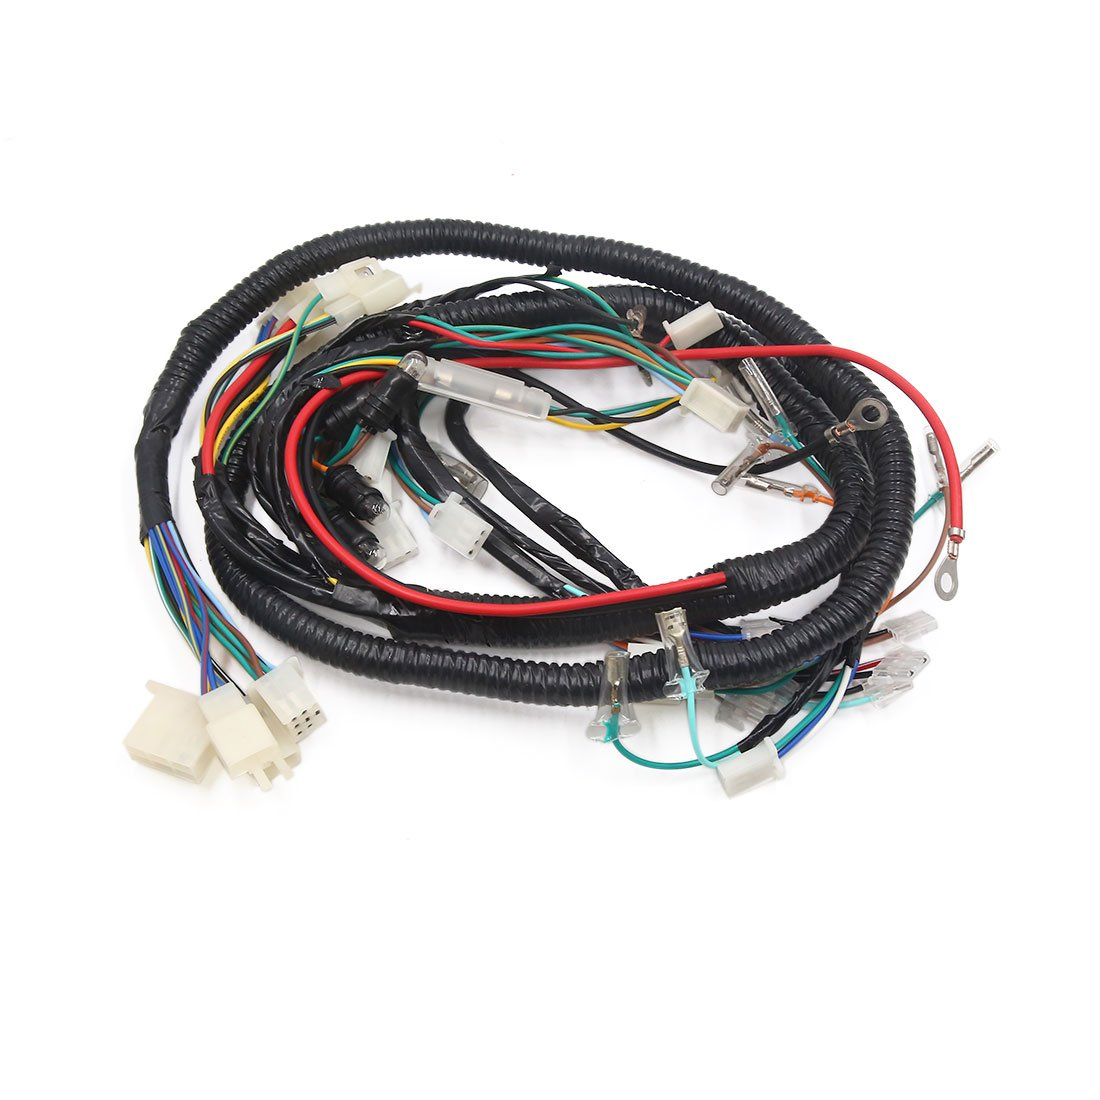 uxcell Female Motorcycle Electrical Scooter Main Wiring Harness Cable Assembly Black